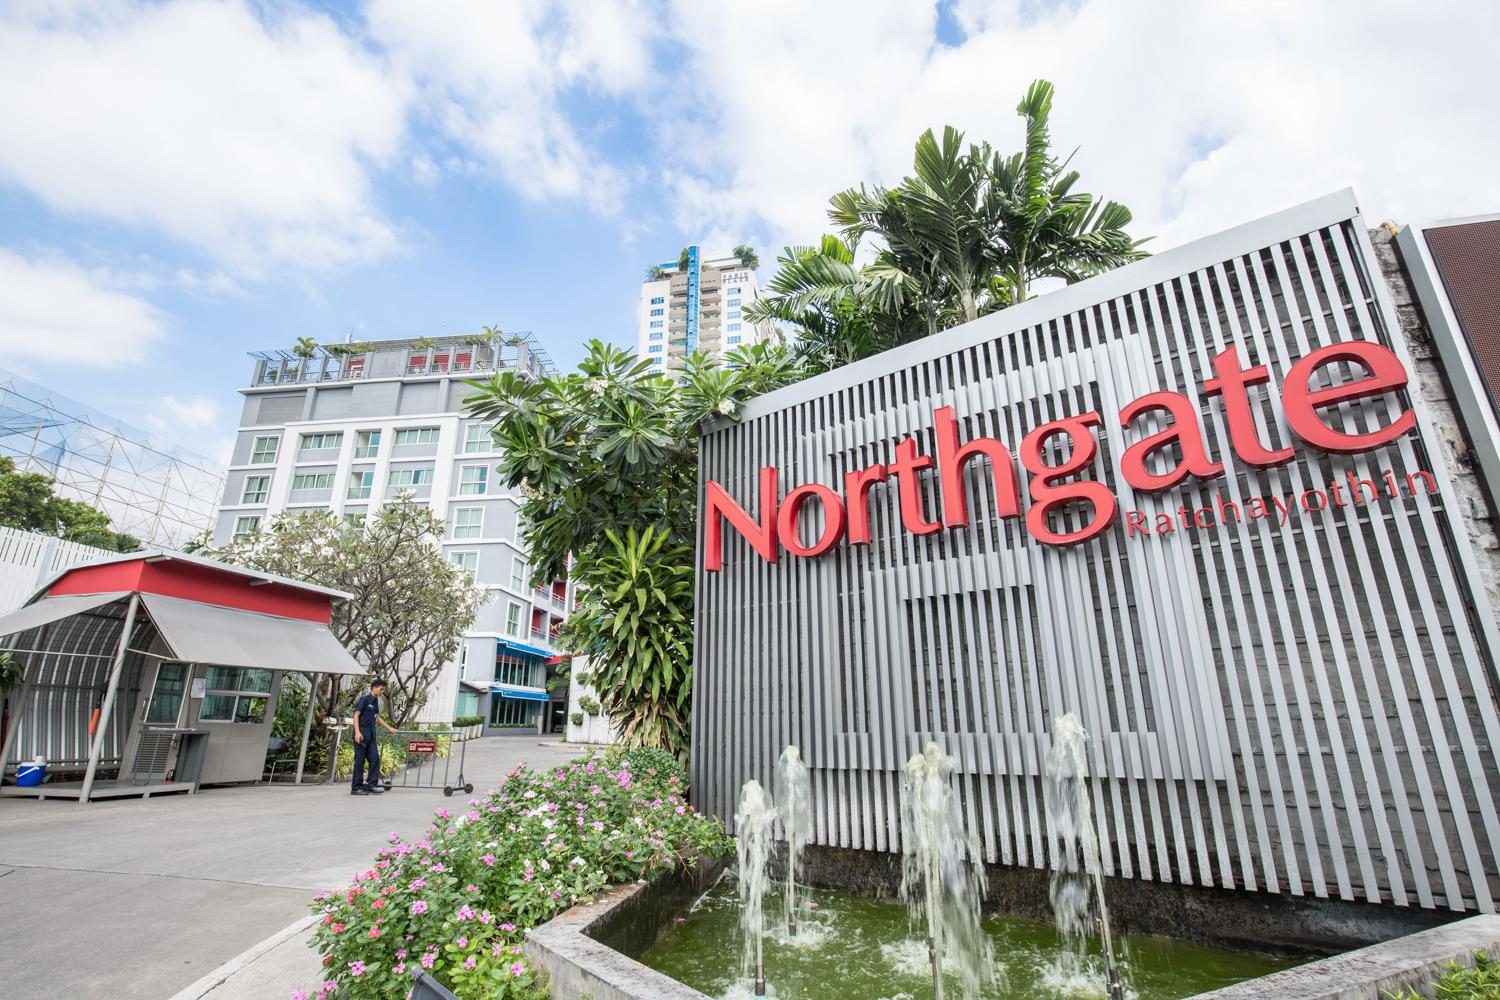 Northgate Ratchayothin, Chatuchak